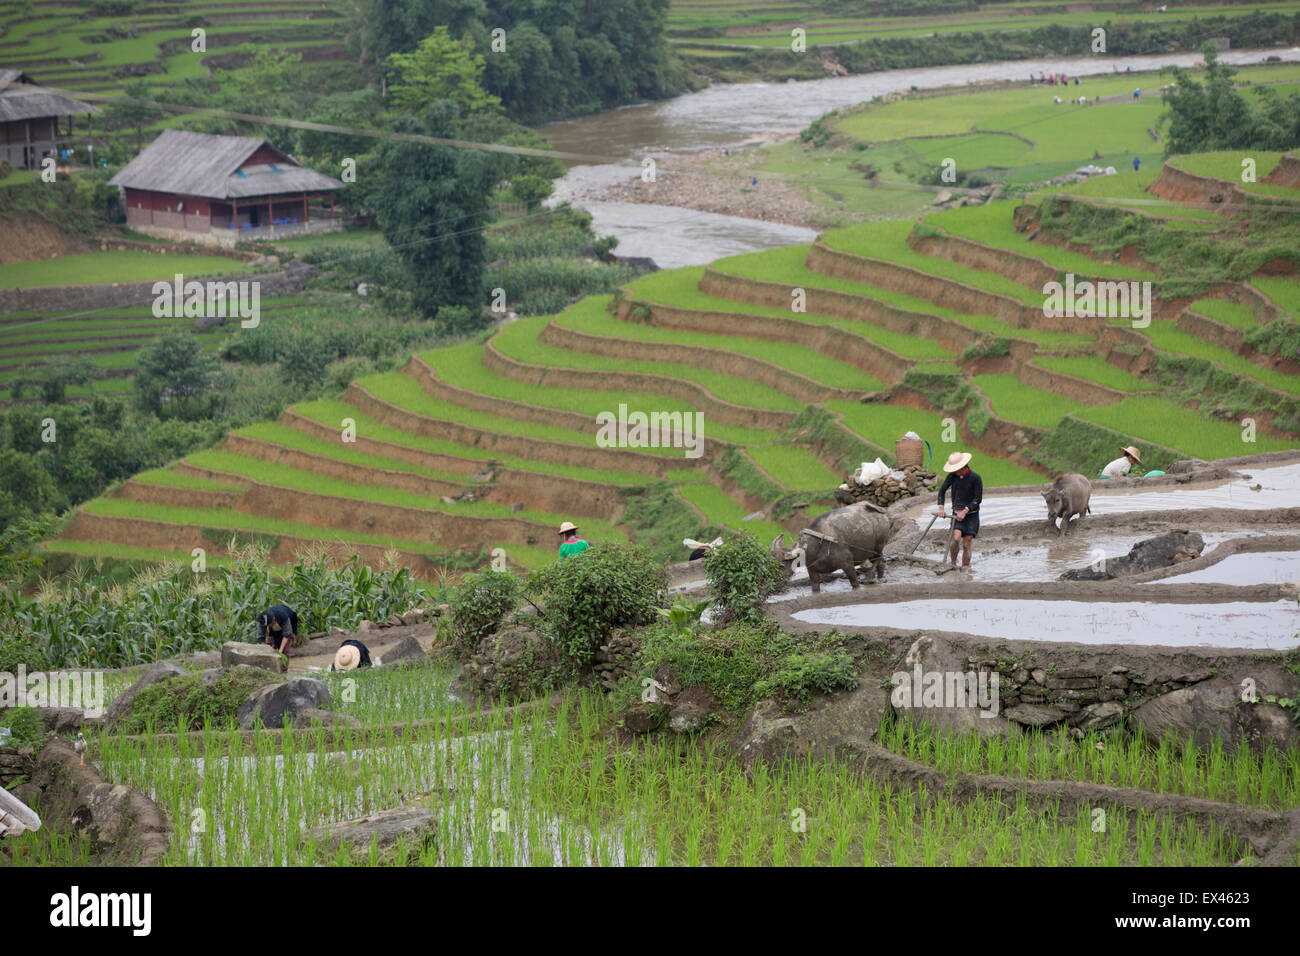 Farmers plant rice during the rainy season with a water buffalo drawn plow near Sapa, Vietnam - Stock Image